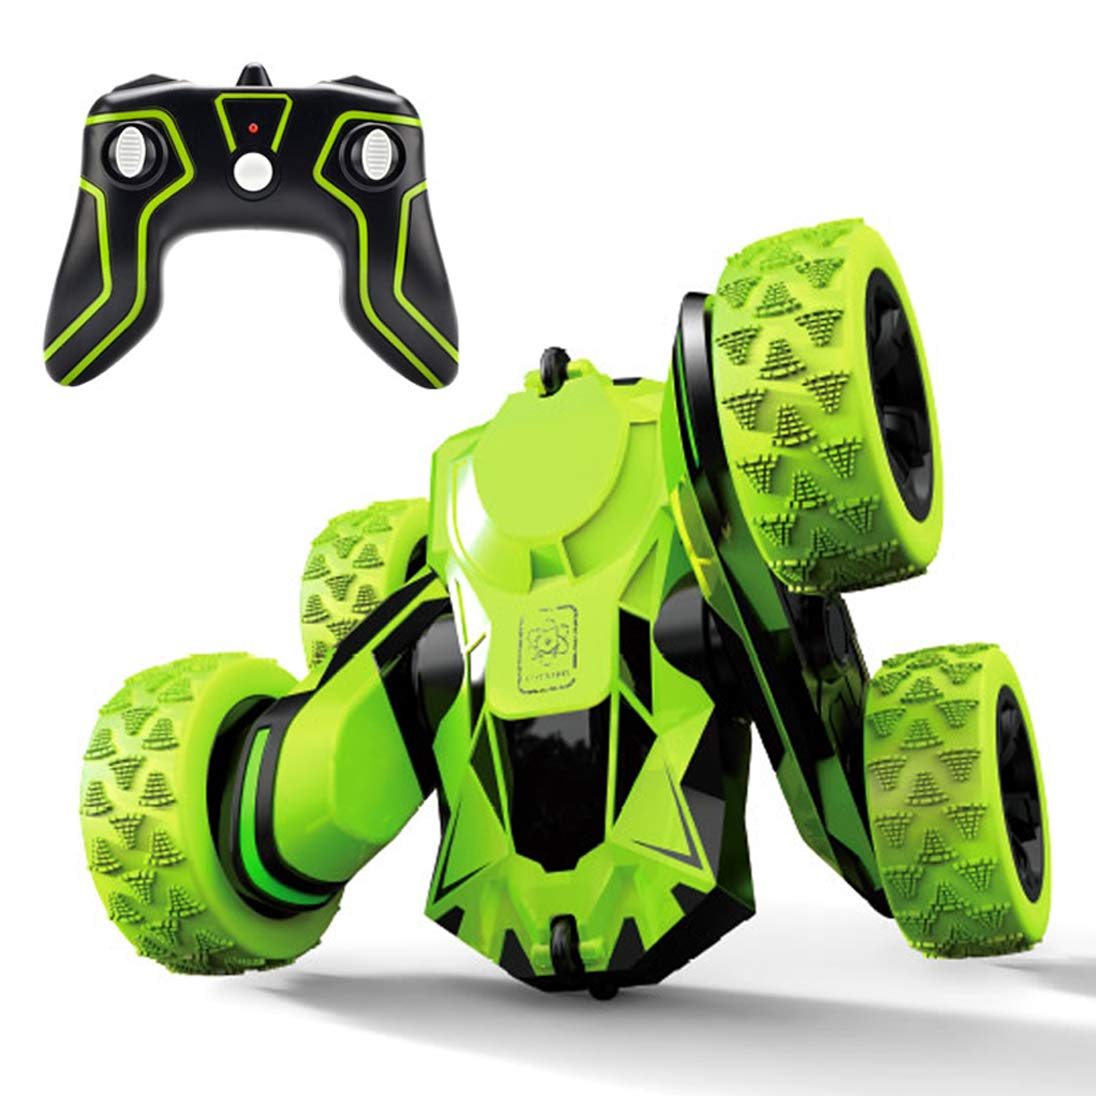 Threeking Rc Stunt Car Remote Control Off-Road Truck Double Sided Tumbling 360 Degree Rotation 3D Deformation Dance Car 1:28 2.4Ghz Rechargeable Stunt Car Great Gift for Kids - Green by Threeking (Image #6)